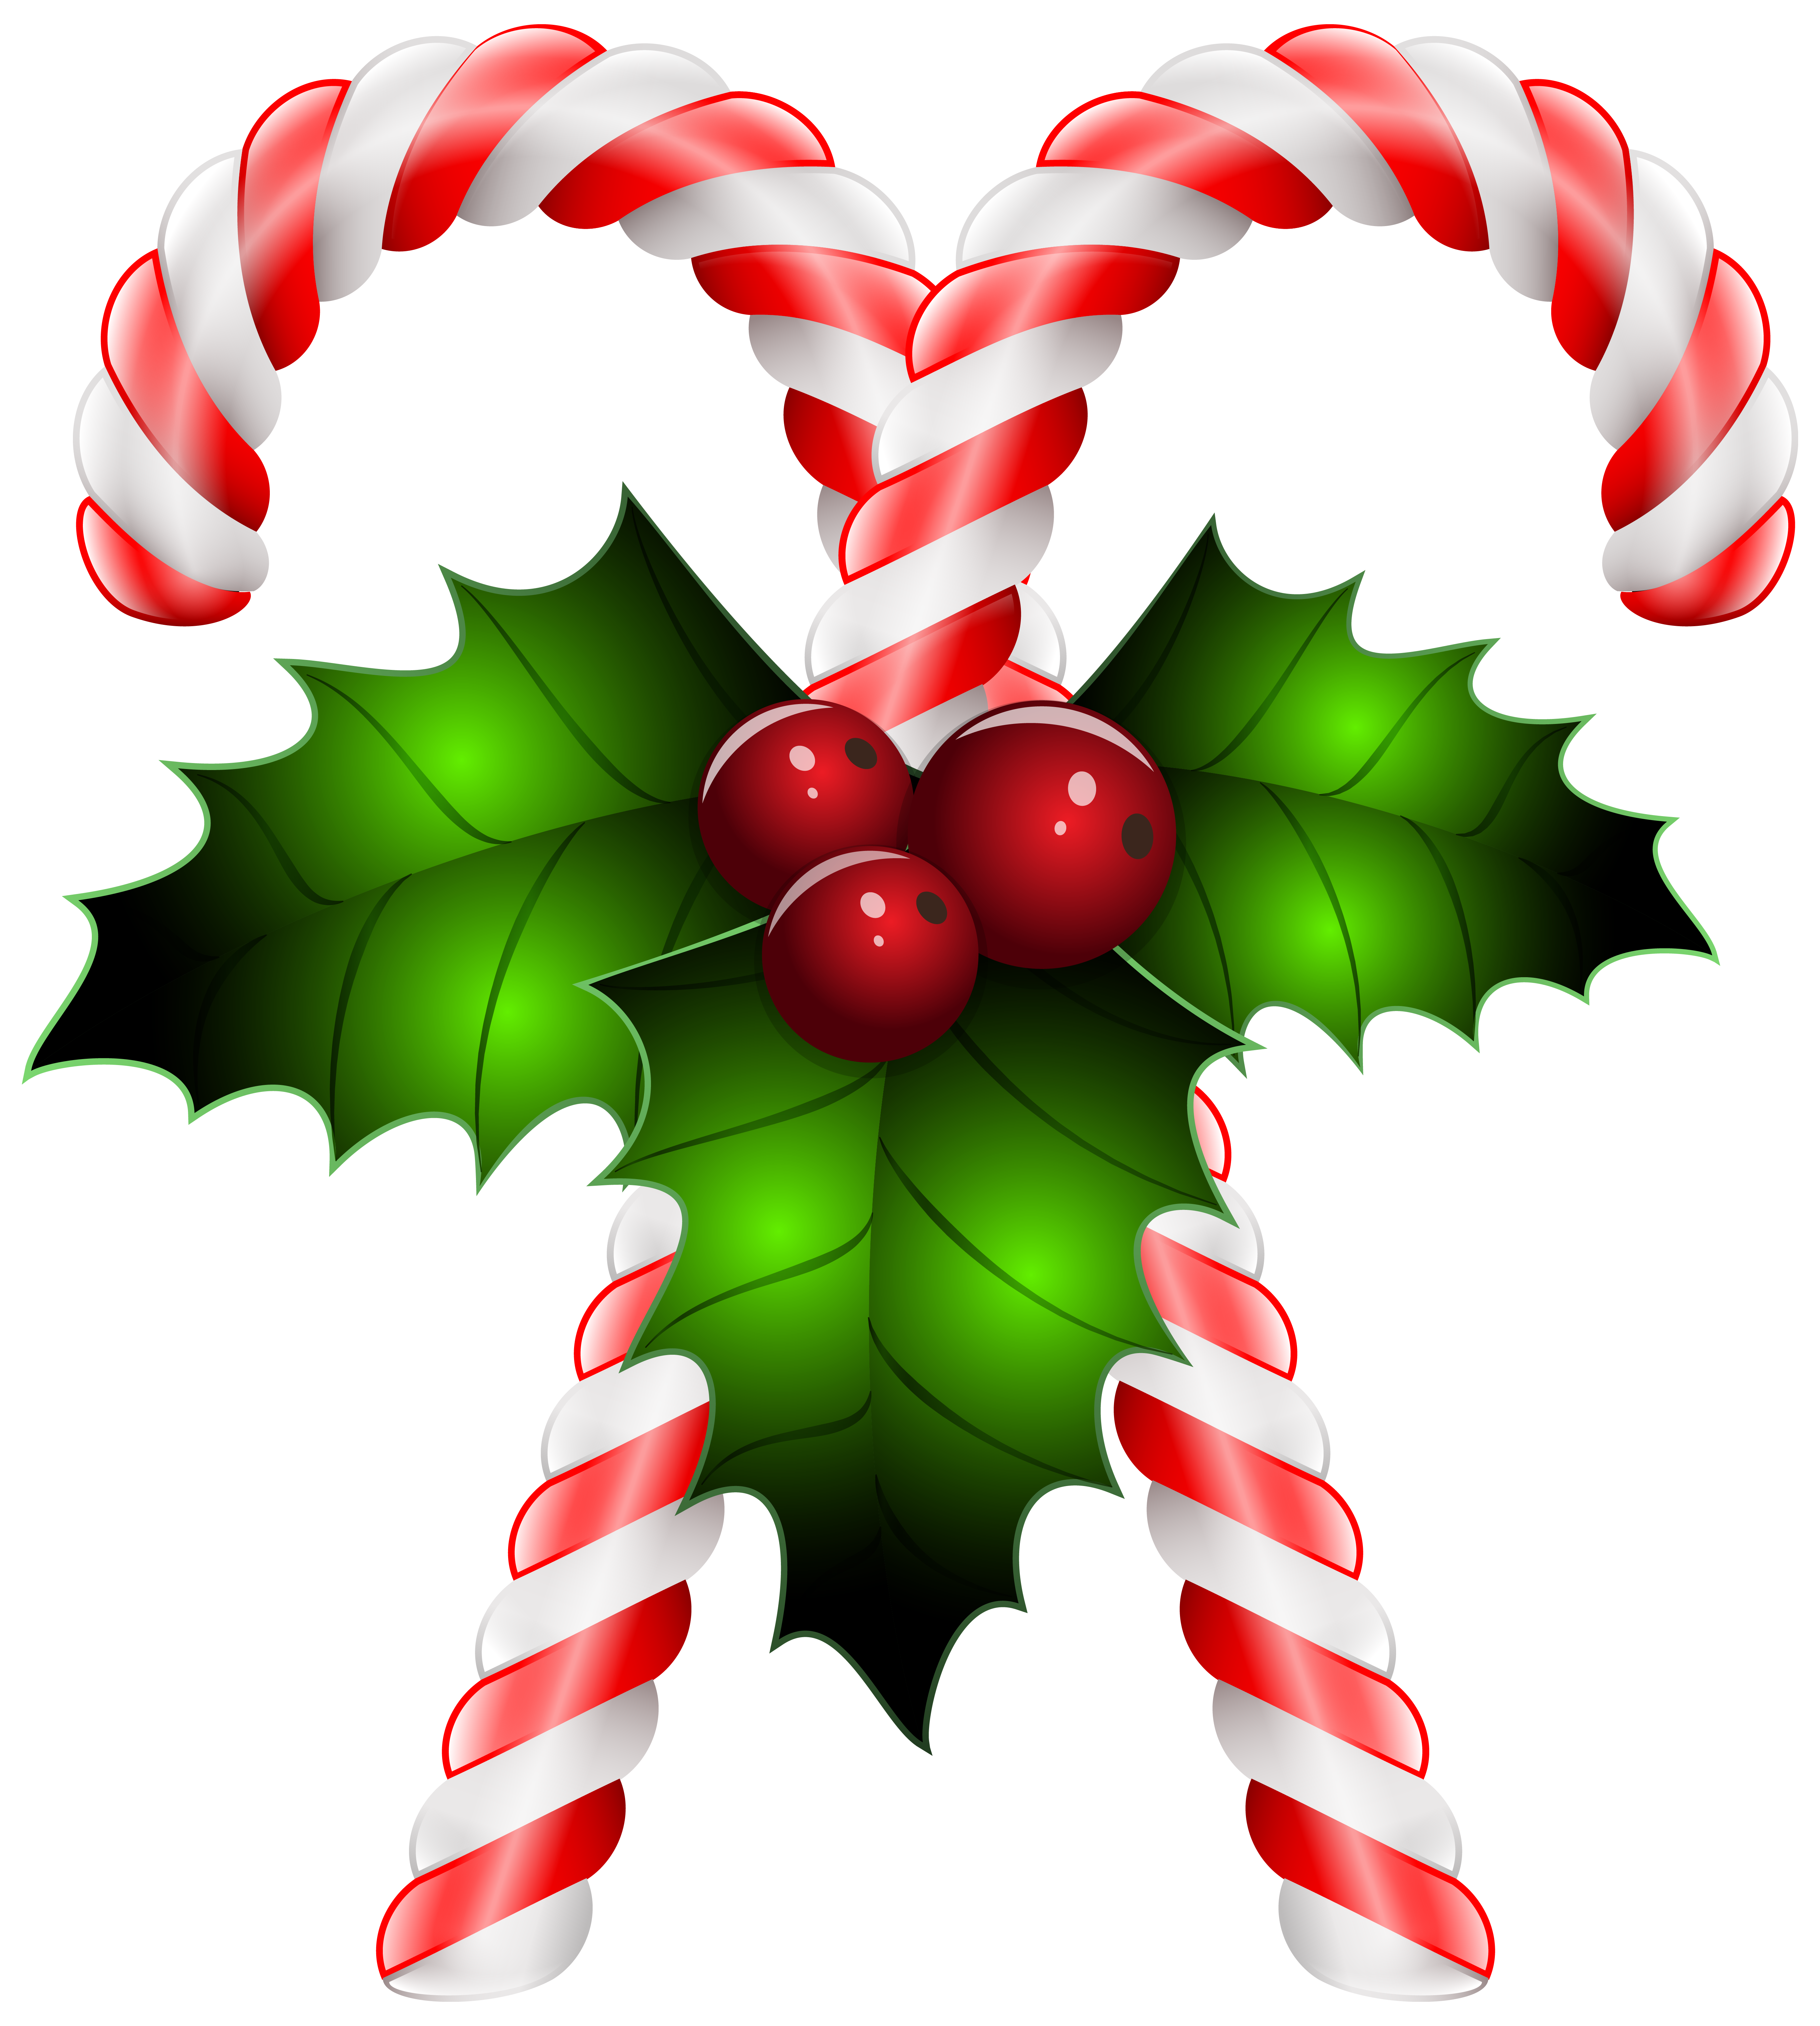 clipart royalty free library Cane clipart three. Candy canes with holly.